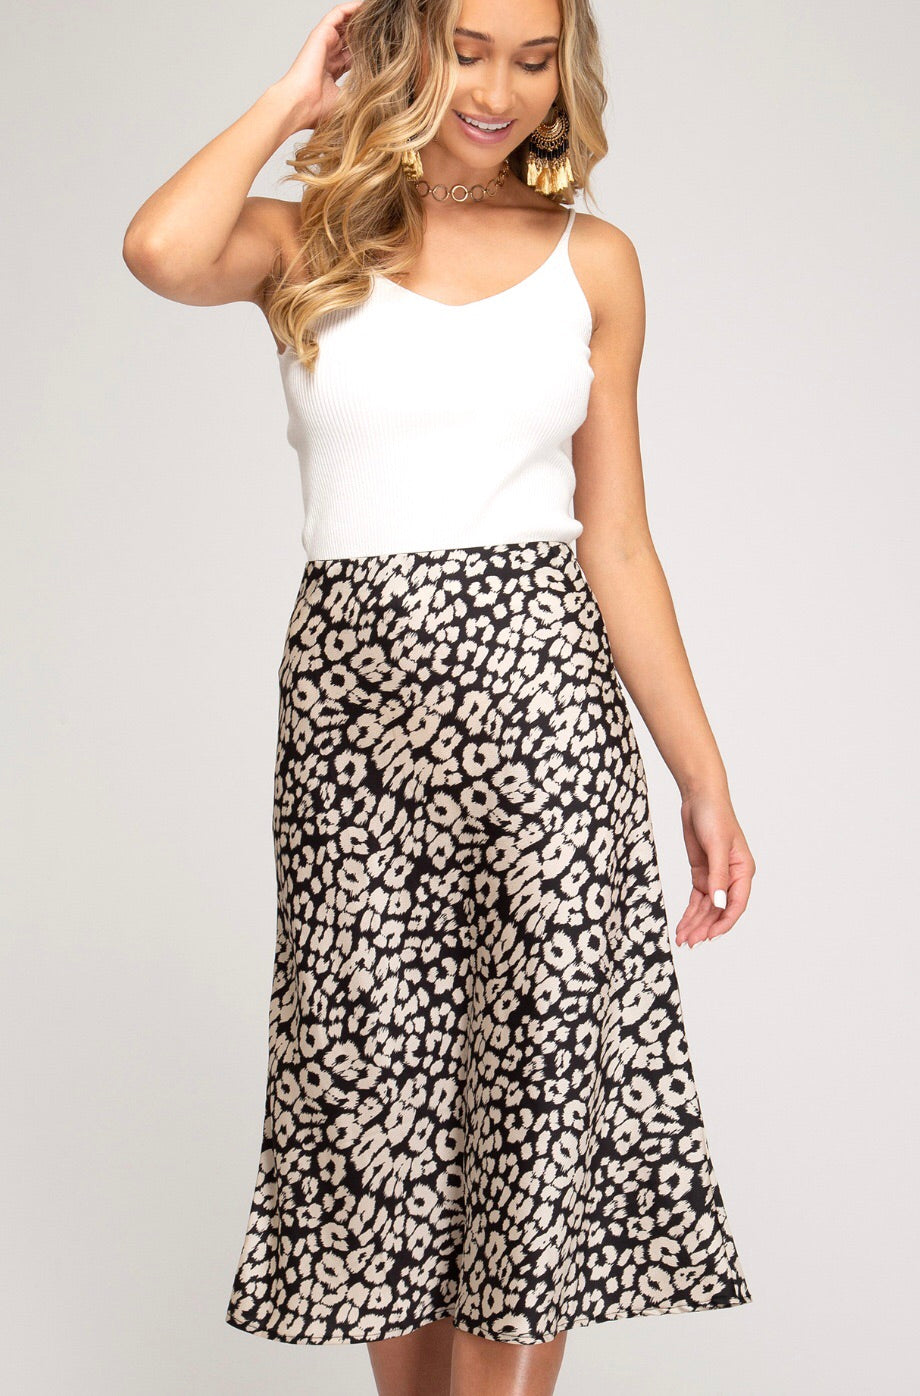 Black and White Satin Leopard Skirt with Elastic Waist